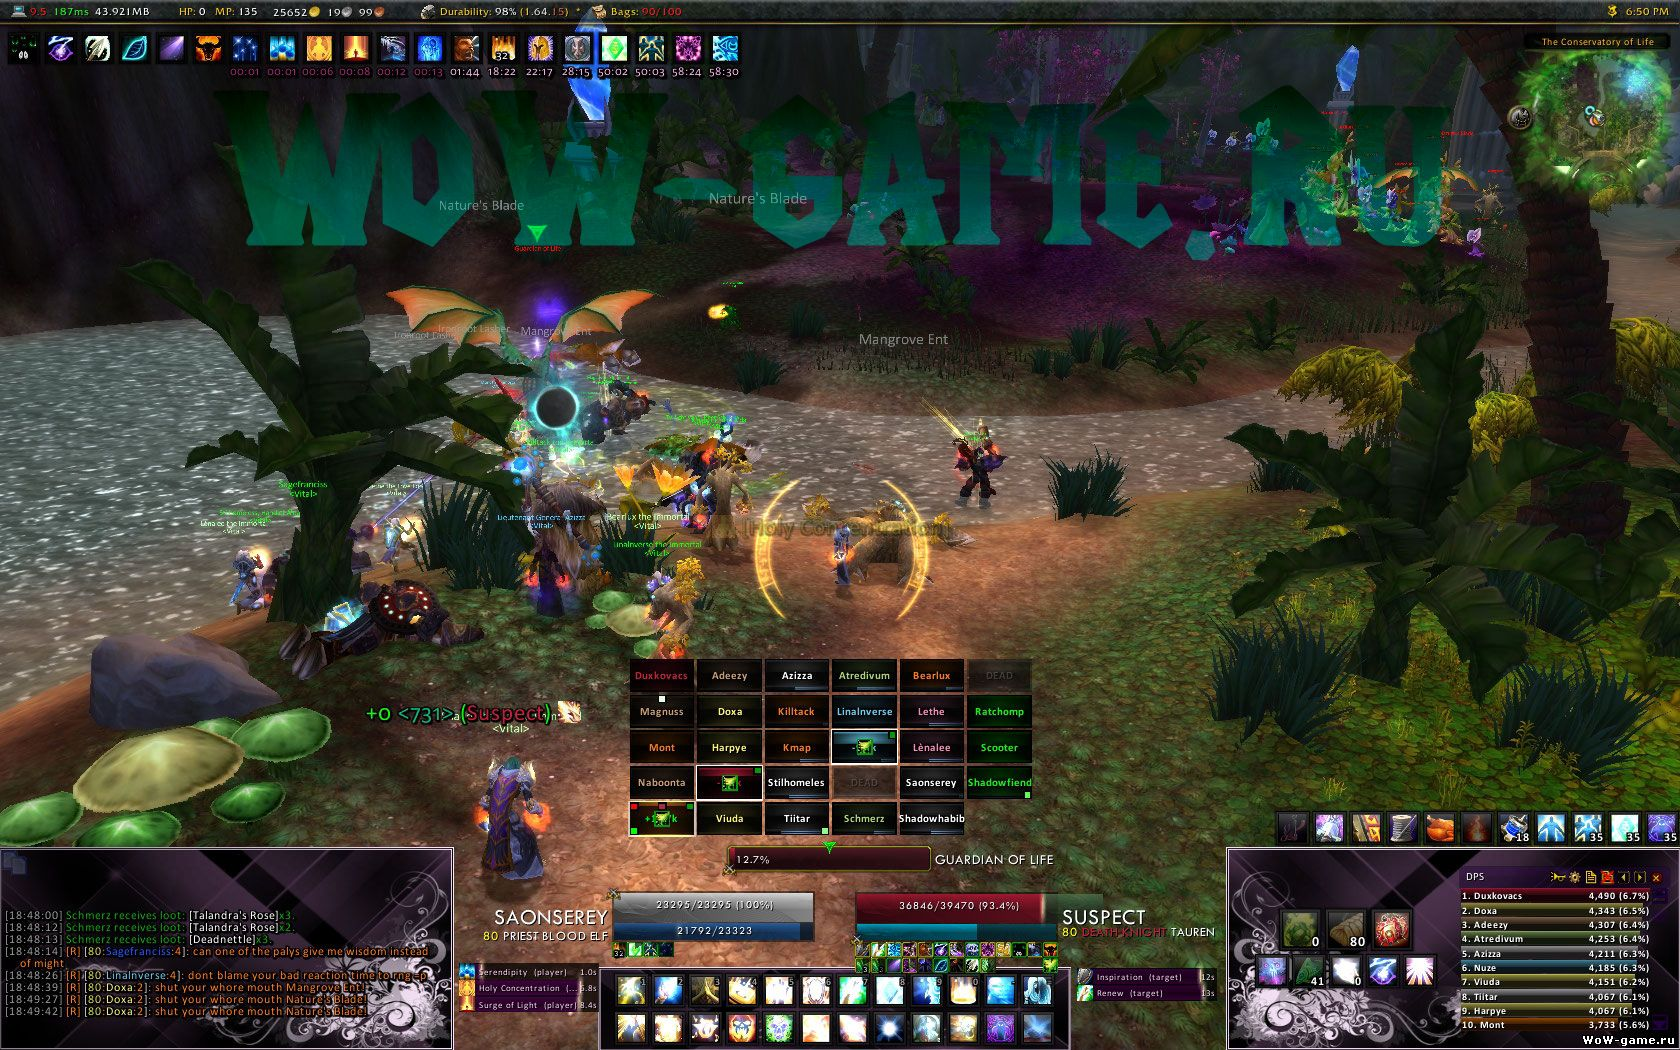 Wowinterface - find world of warcraft addons!, world of warcraft addons, interfaces, skins, mods  community